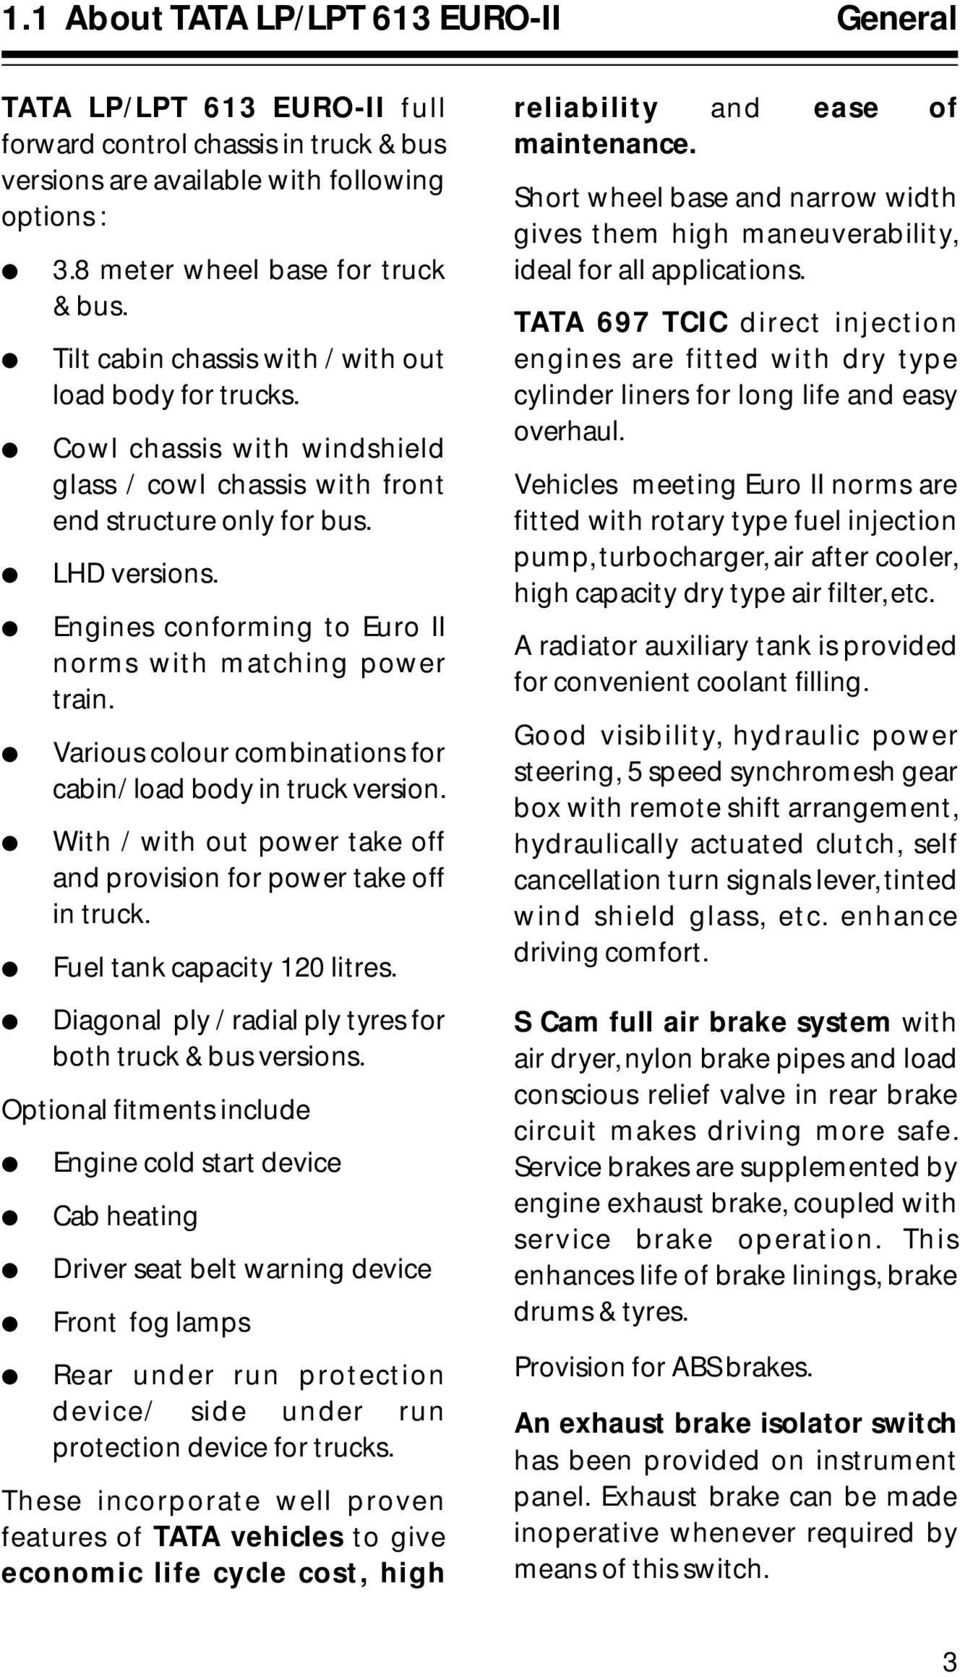 Operator S Service Book Pdf Tata 50 Cc Scooter Wiring Diagram Engines Conforming To Euro Ii Norms With Matching Power Train Various Colour Combinations For Cabin